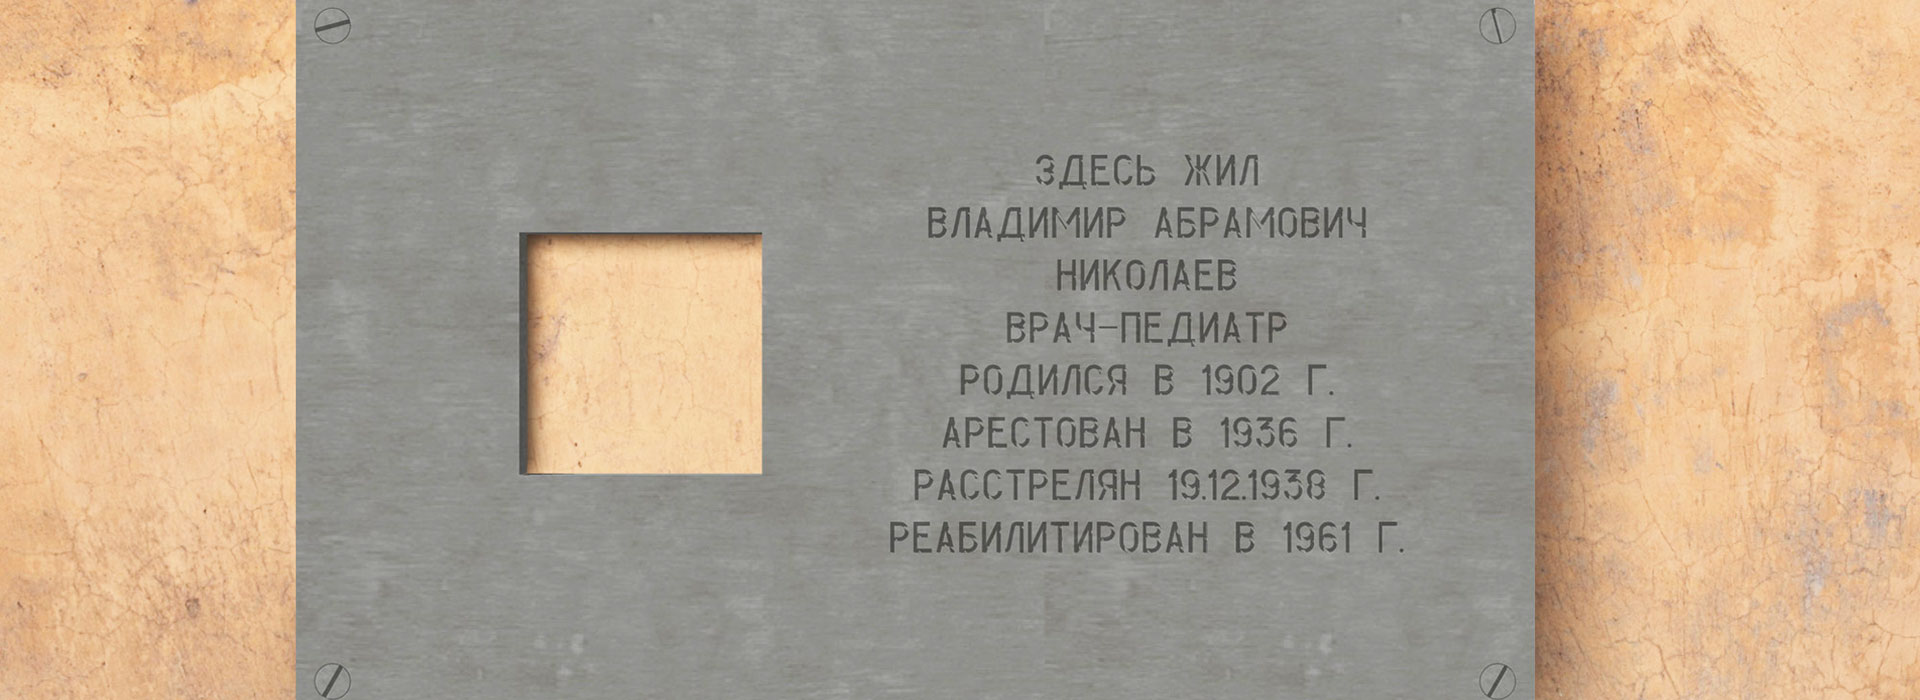 Addressing the past: Moscow's crowd-funded memorials to victims of Soviet repression